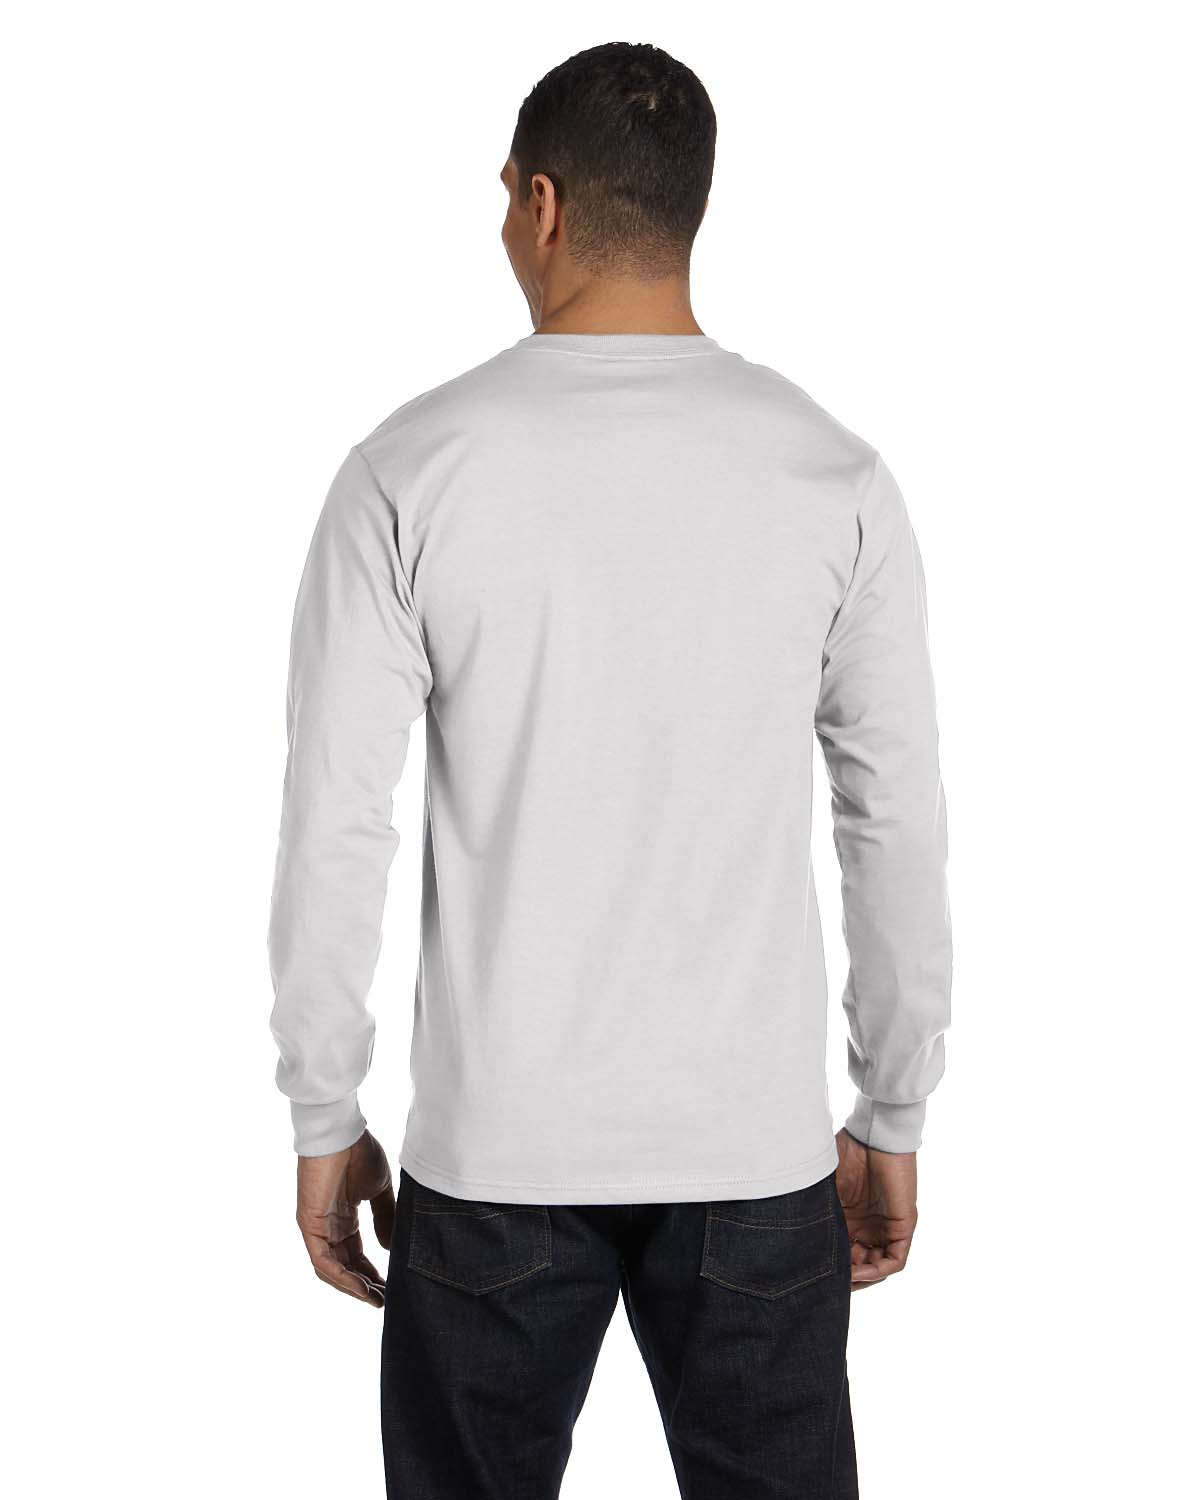 NEW Hanes 6.1 oz 100% Cotton Long-Sleeve Beefy-T S-XL T-Shirt R ...